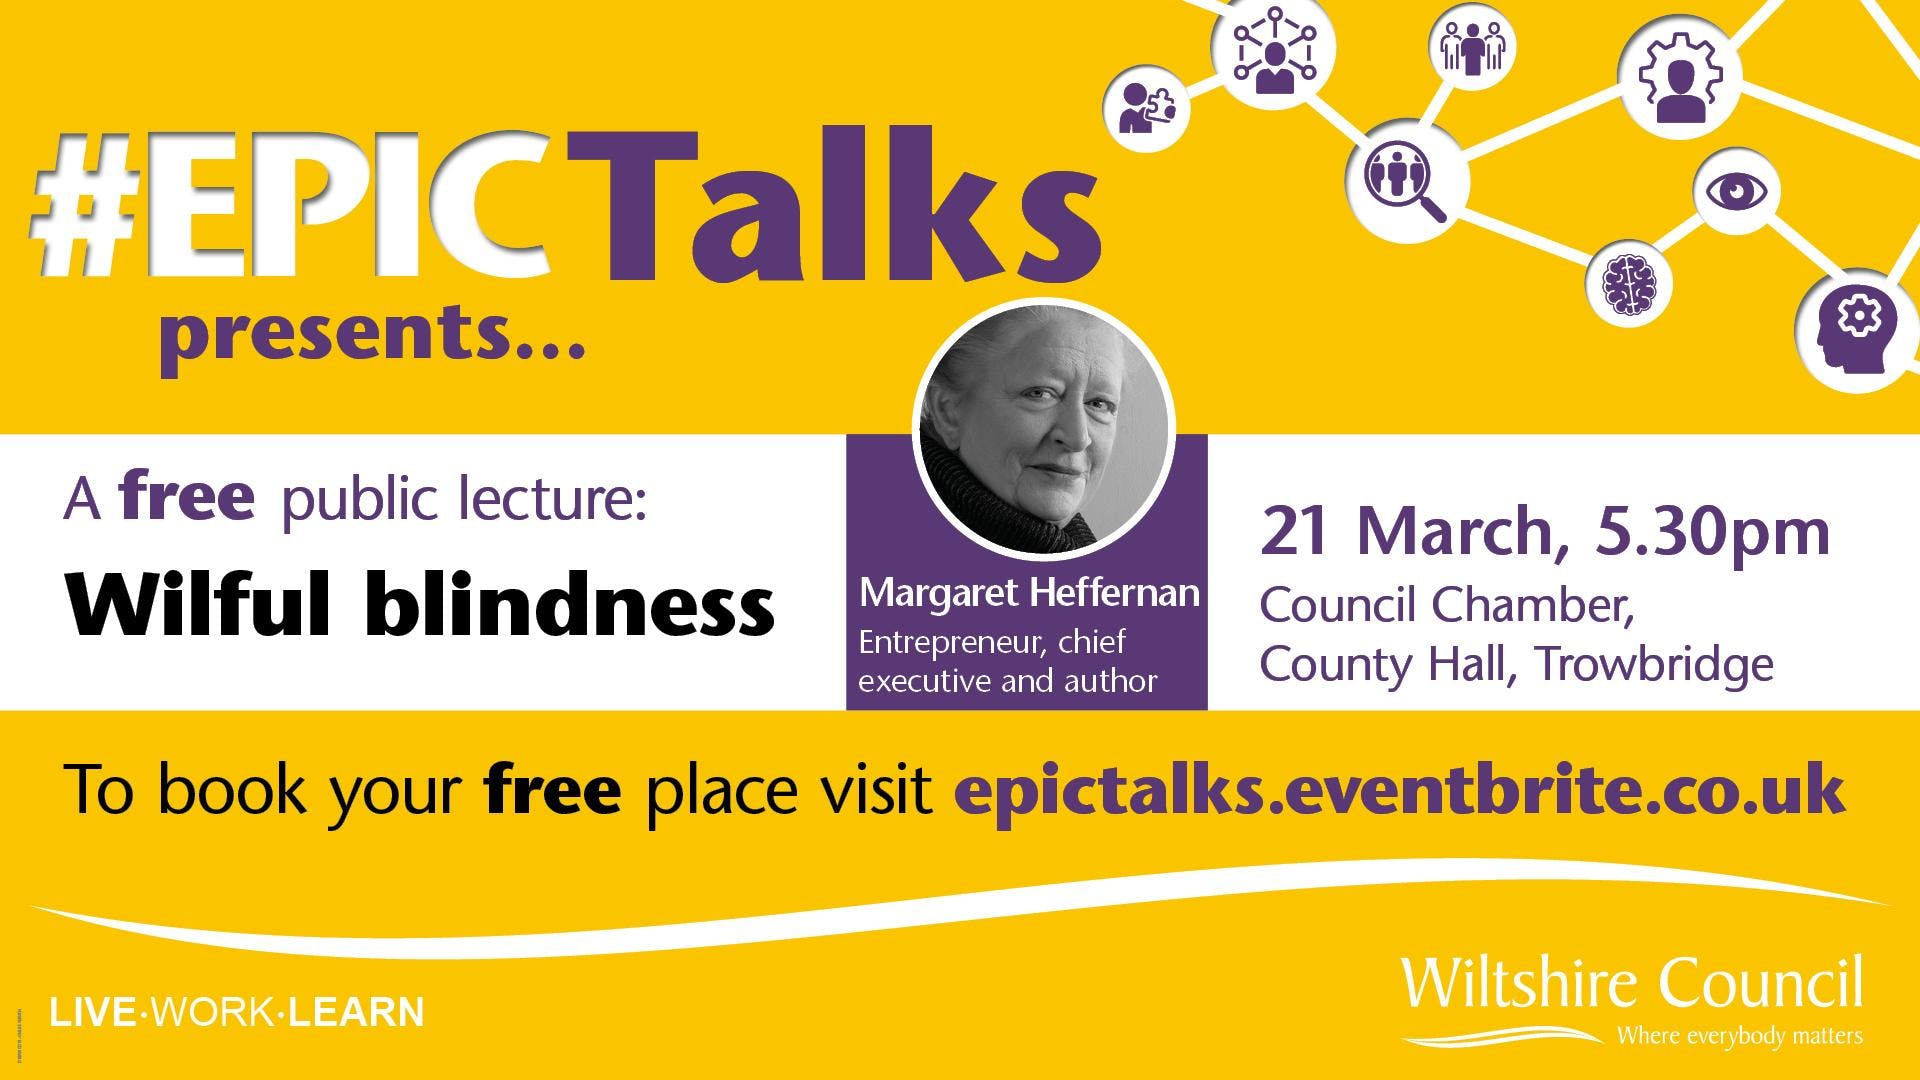 #EPIC Talks presents 'Wilful Blindness' by Ma